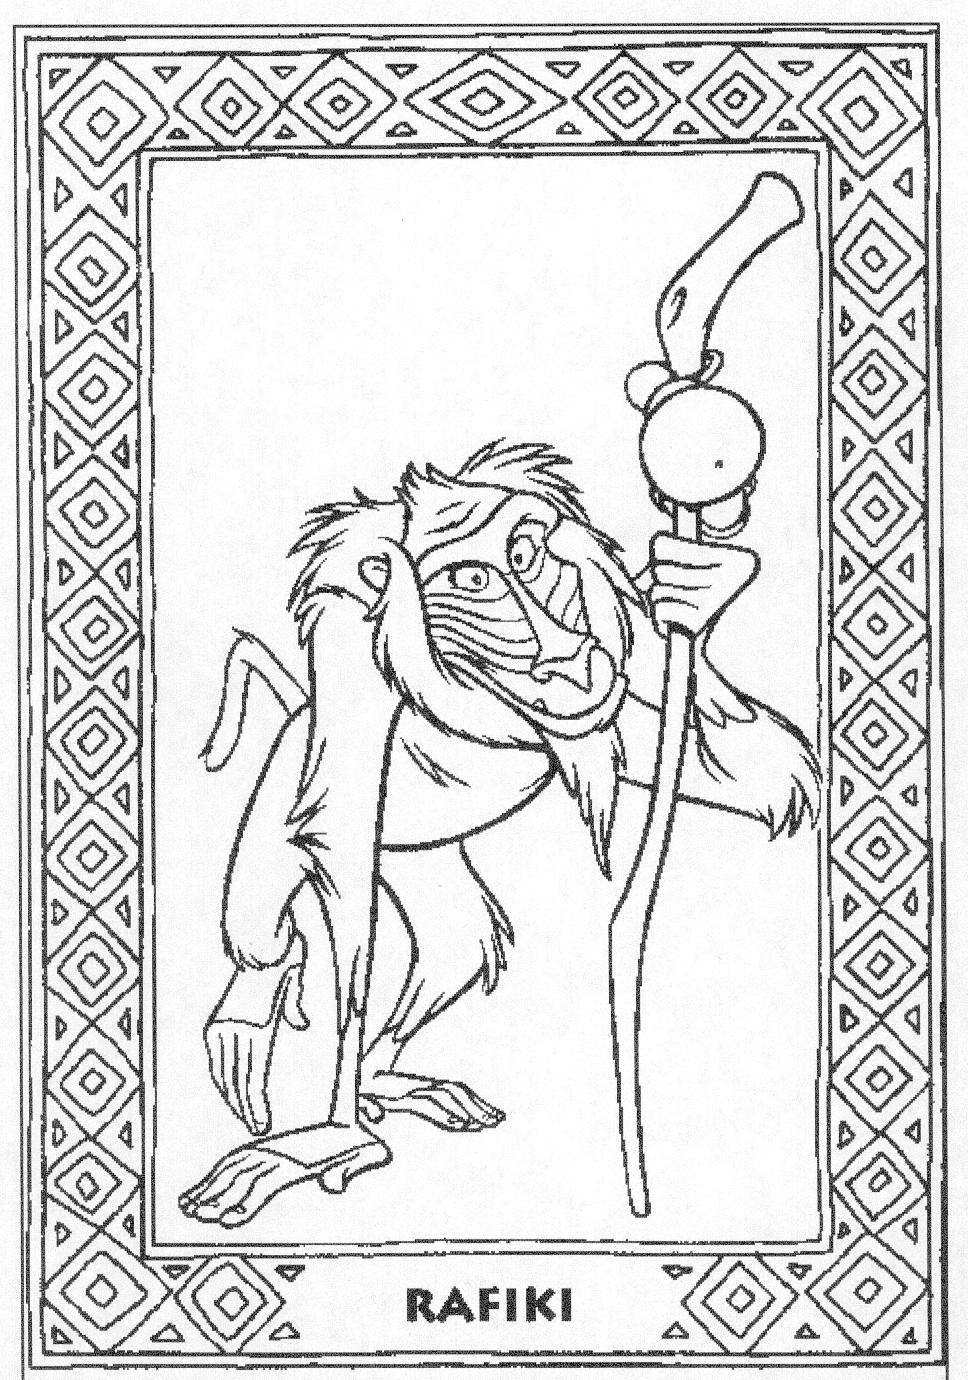 coloring the lion king free printable pages lion king coloring pages the coloring lion king